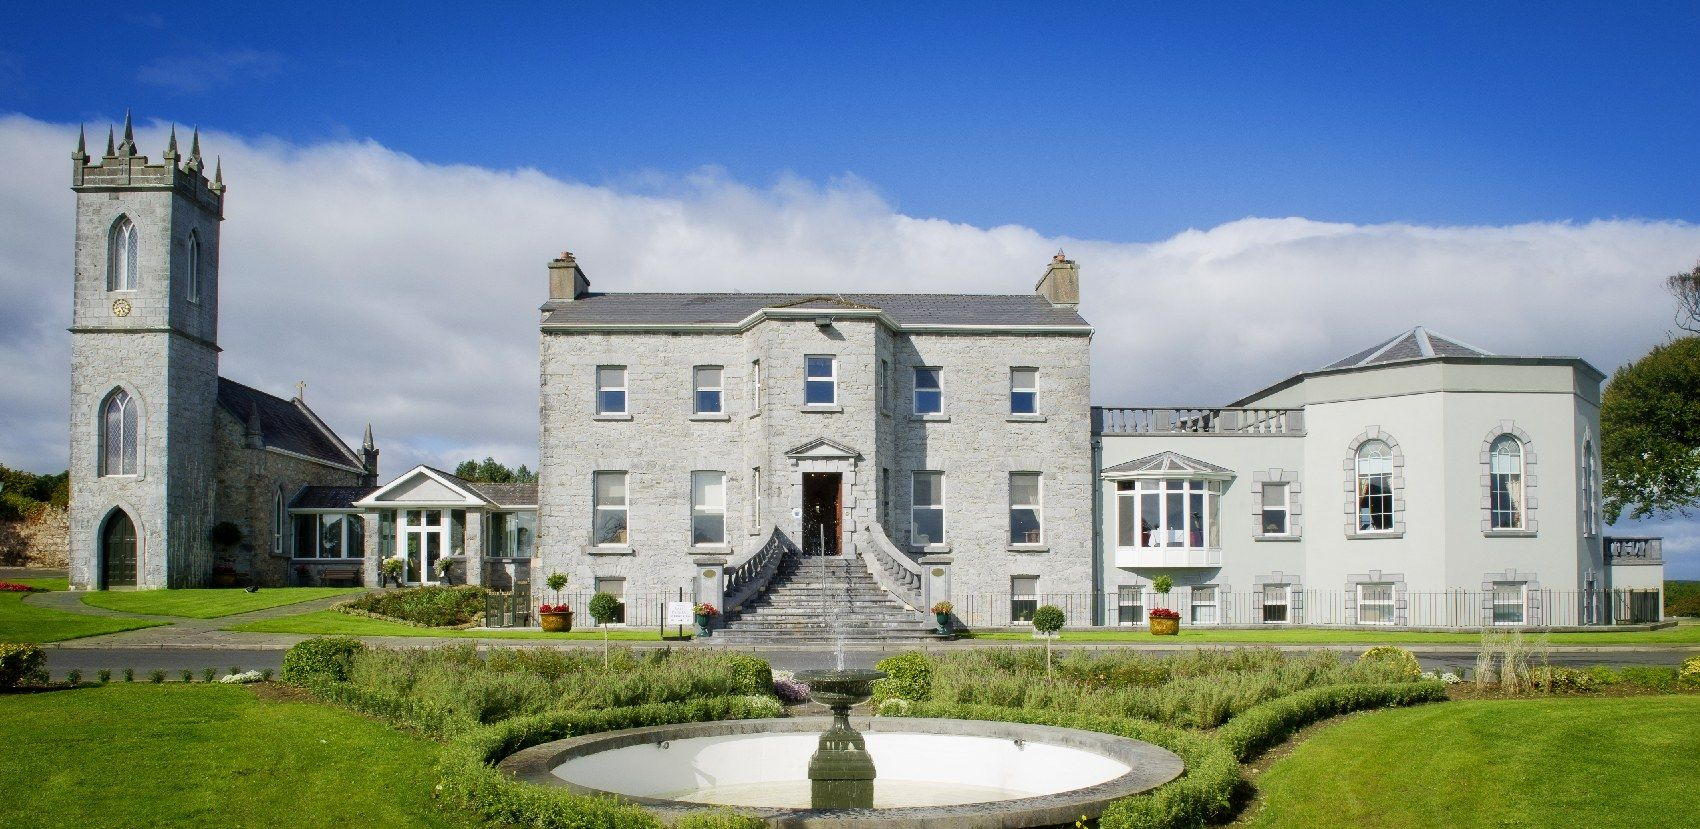 5 Star Luxury Hotel Galway Glenlo Abbey Hotel Will Be Staying